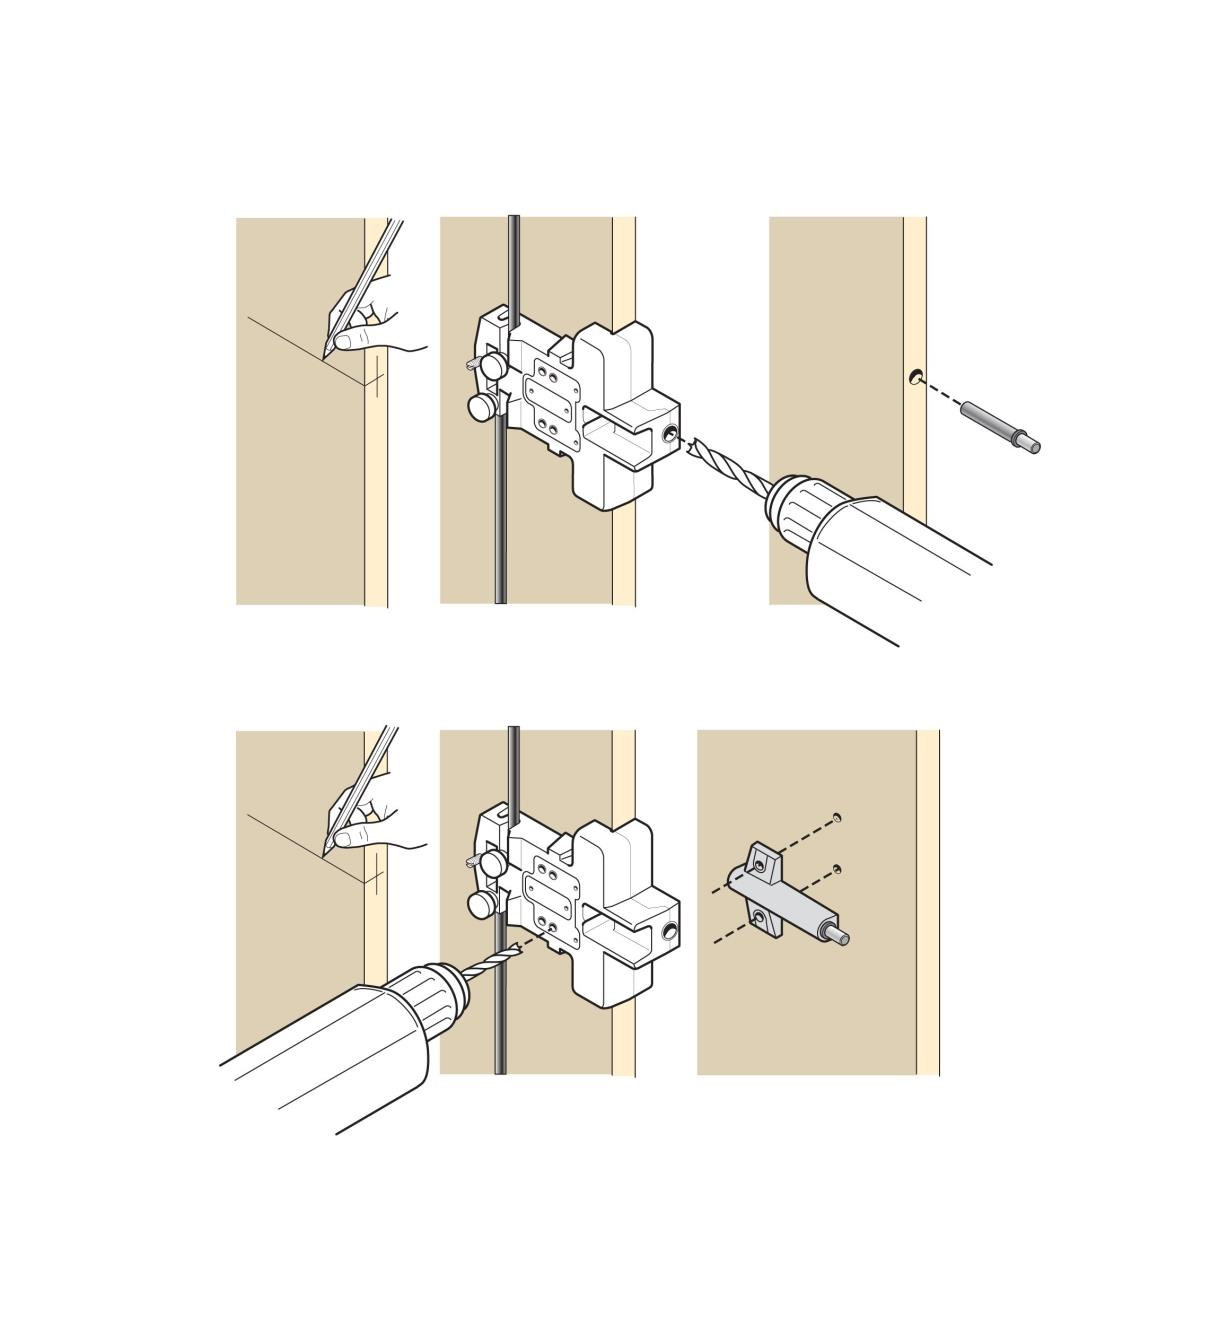 Diagram showing how to use the jig to drill holes for Blumotion installation